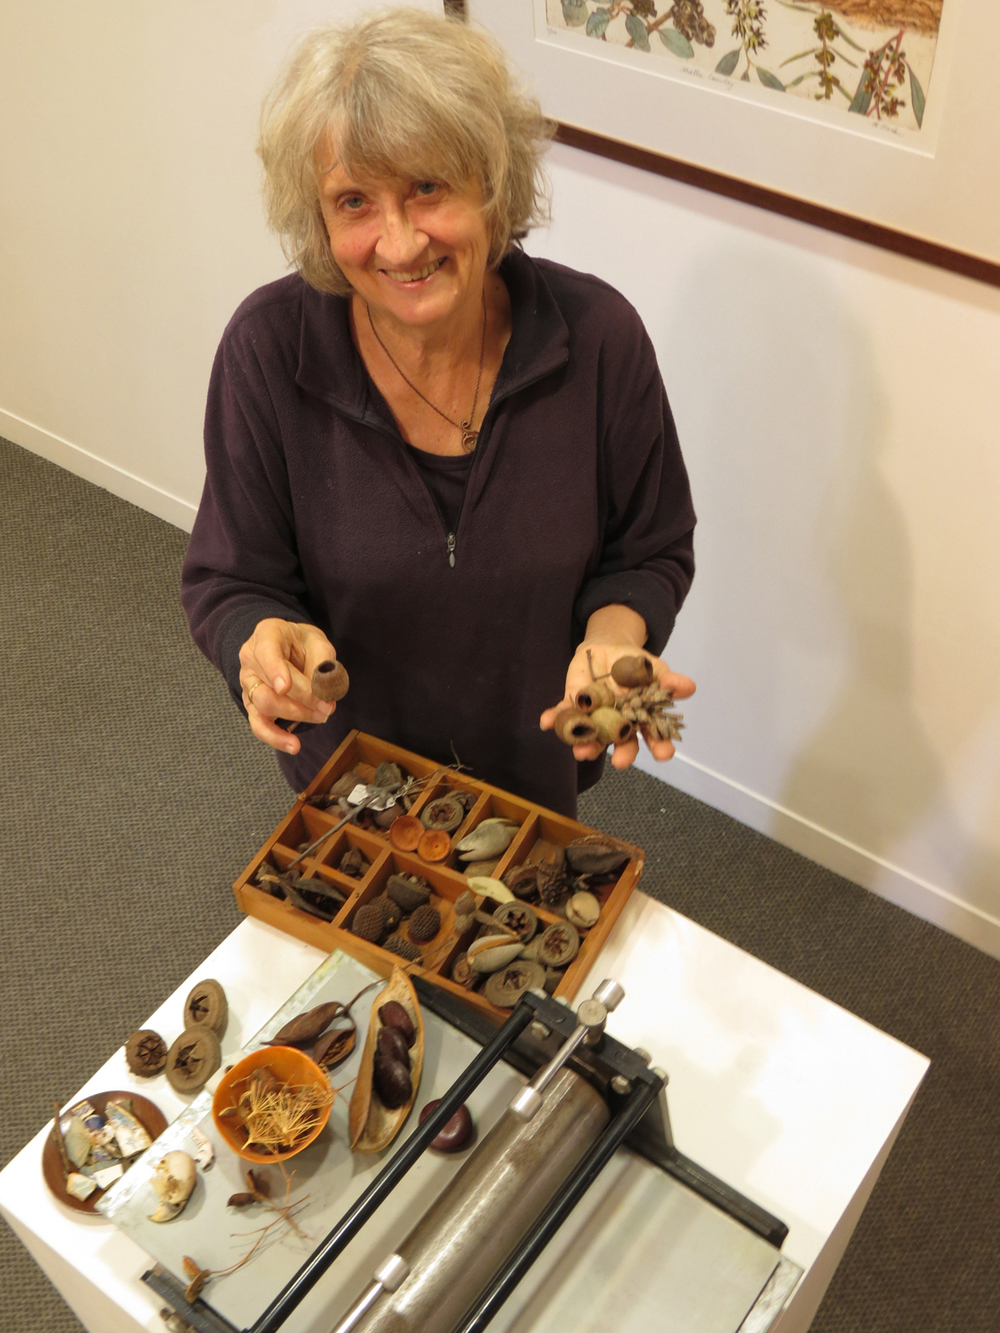 Helen-Clarke_with-printing-press-and-inspiration_highclose_hangAug2014.jpg